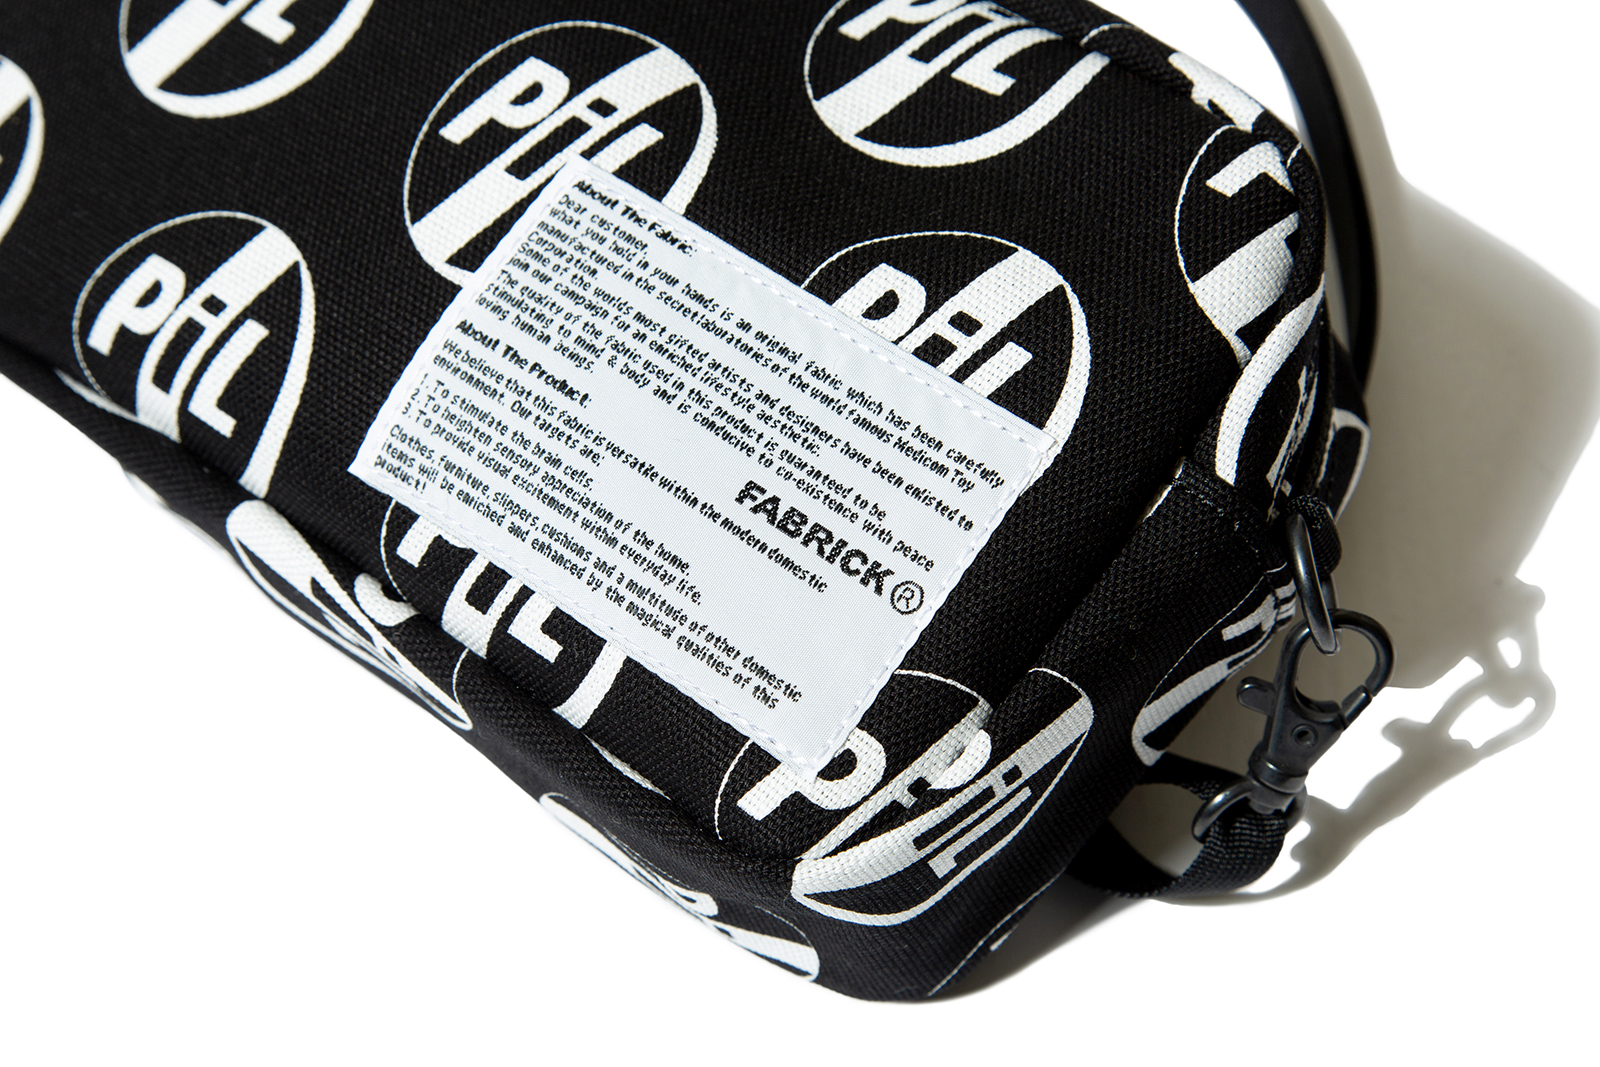 pil-x-fabrick-shoulder-bag_p1